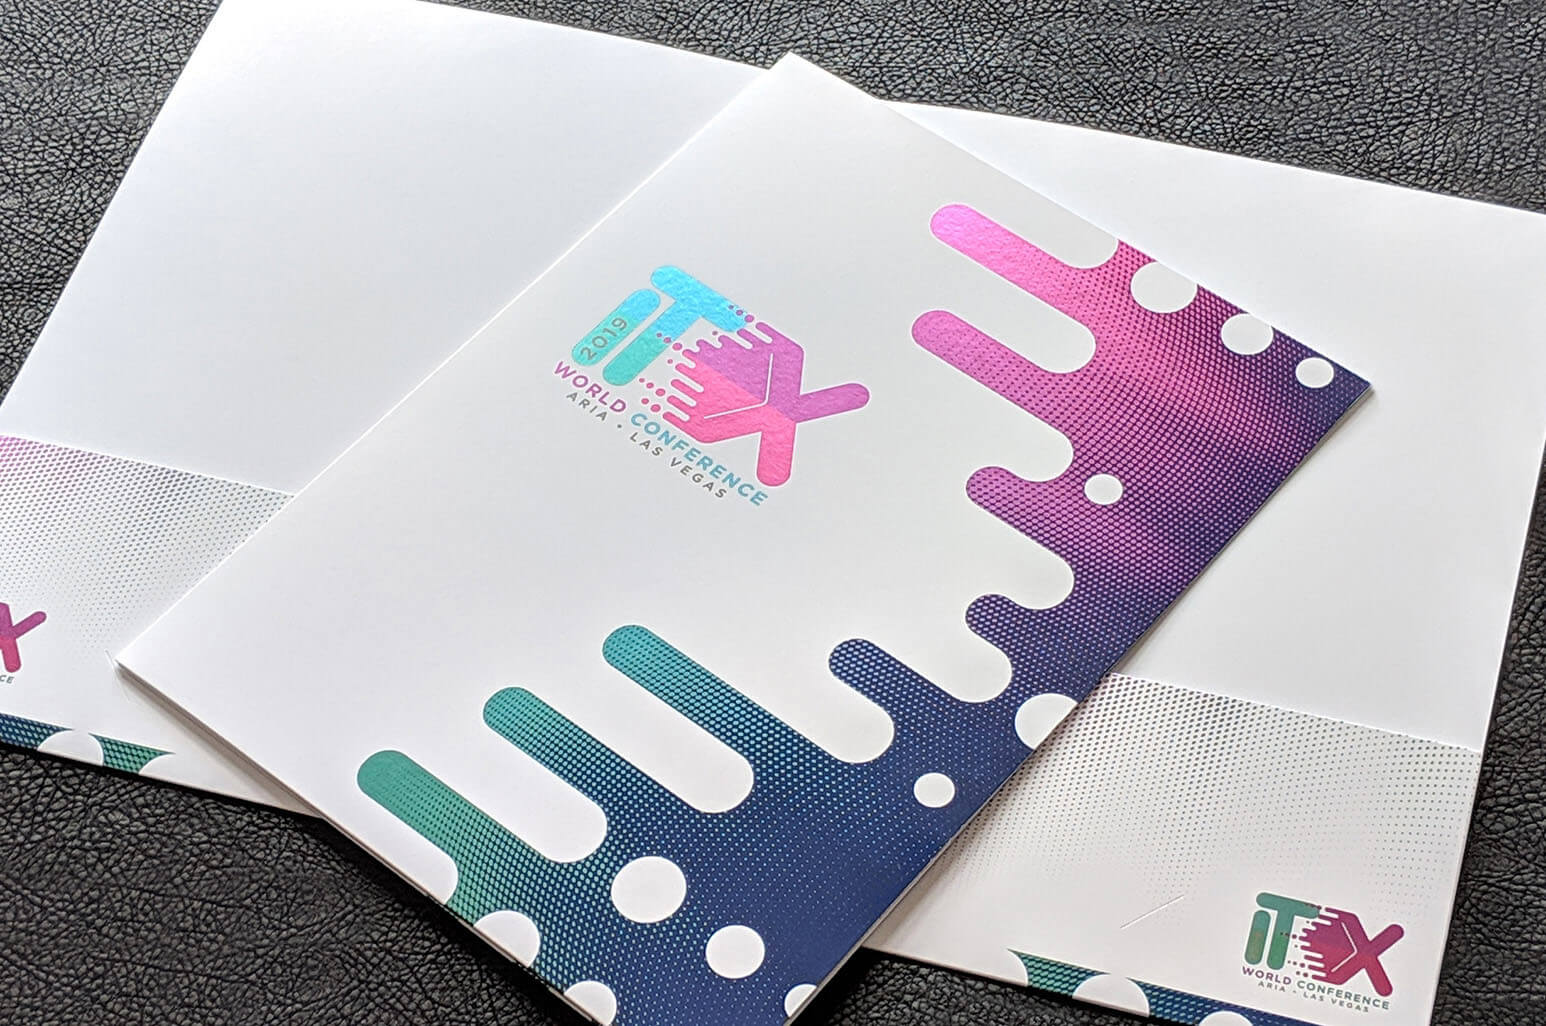 Inline foil folders will not only leave a lasting impression, but they also allow for cohesive branding across all of your print marketing materials.